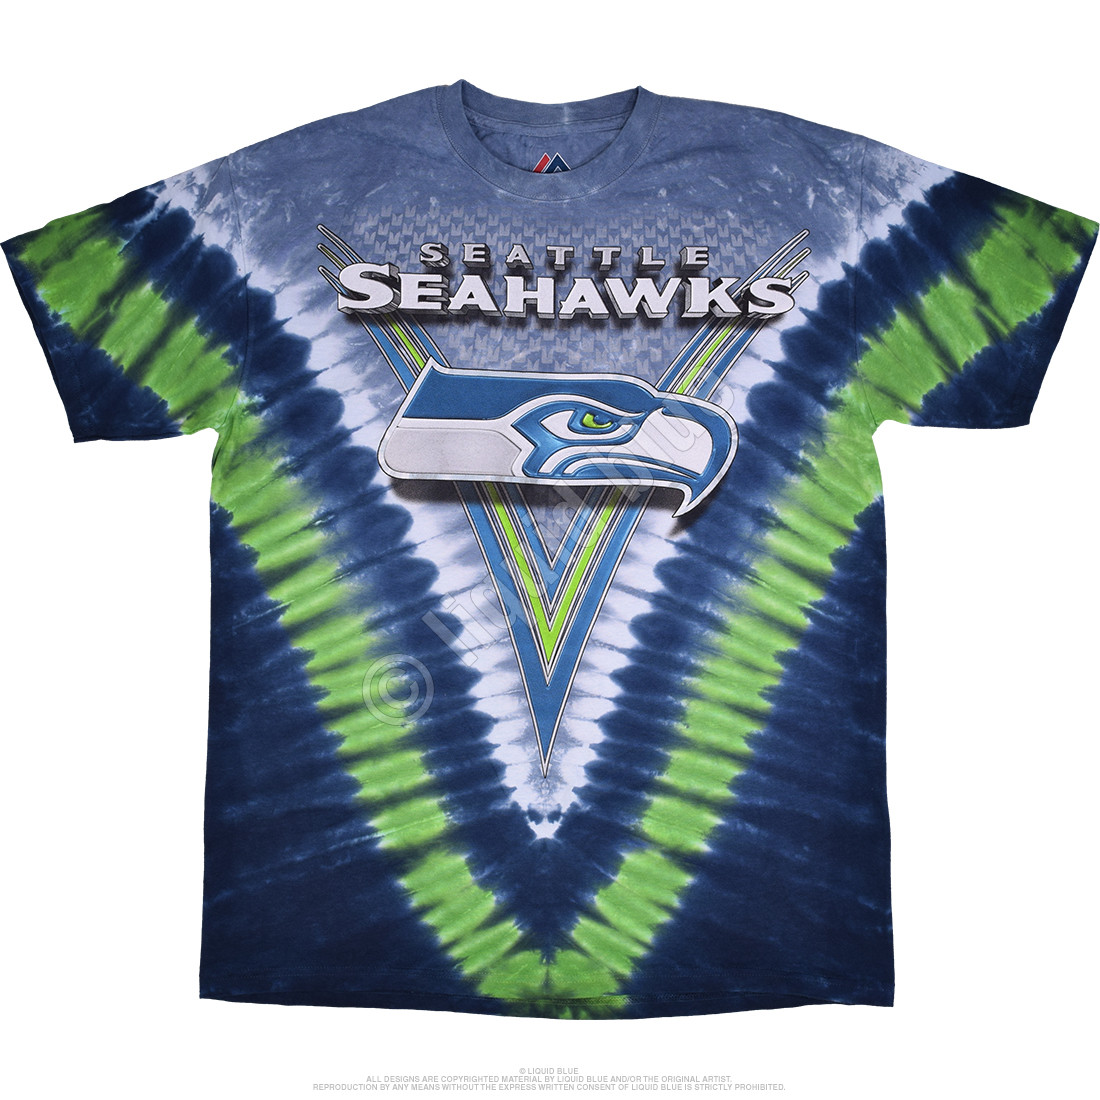 95e8b676bcce NFL Seattle Seahawks V Tie-Dye T-Shirt Tee Liquid Blue